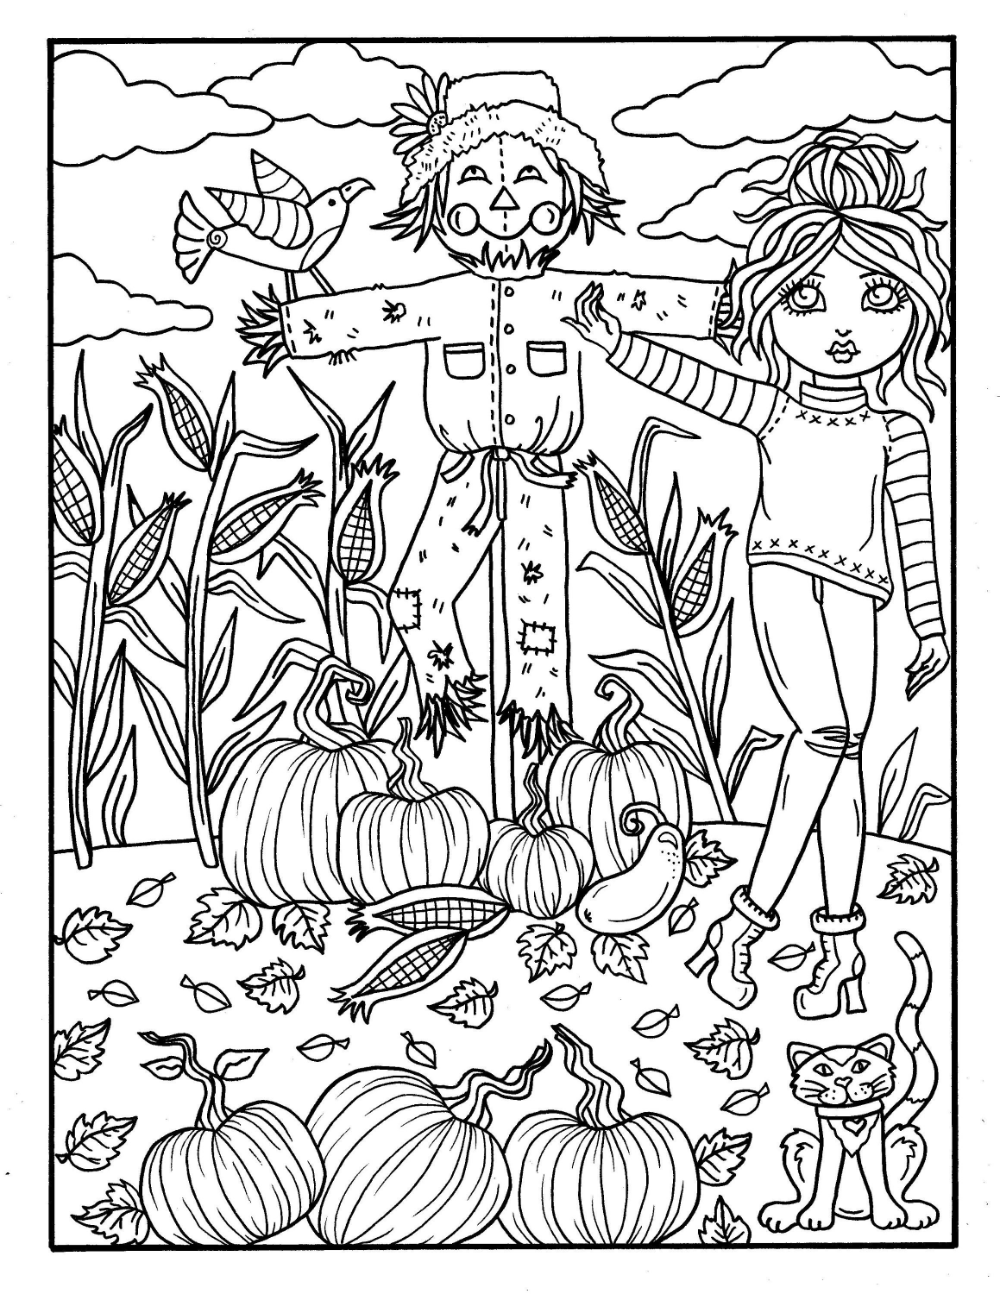 cat and bunny coloring page bambi sierpnia 2014 and page coloring bunny cat